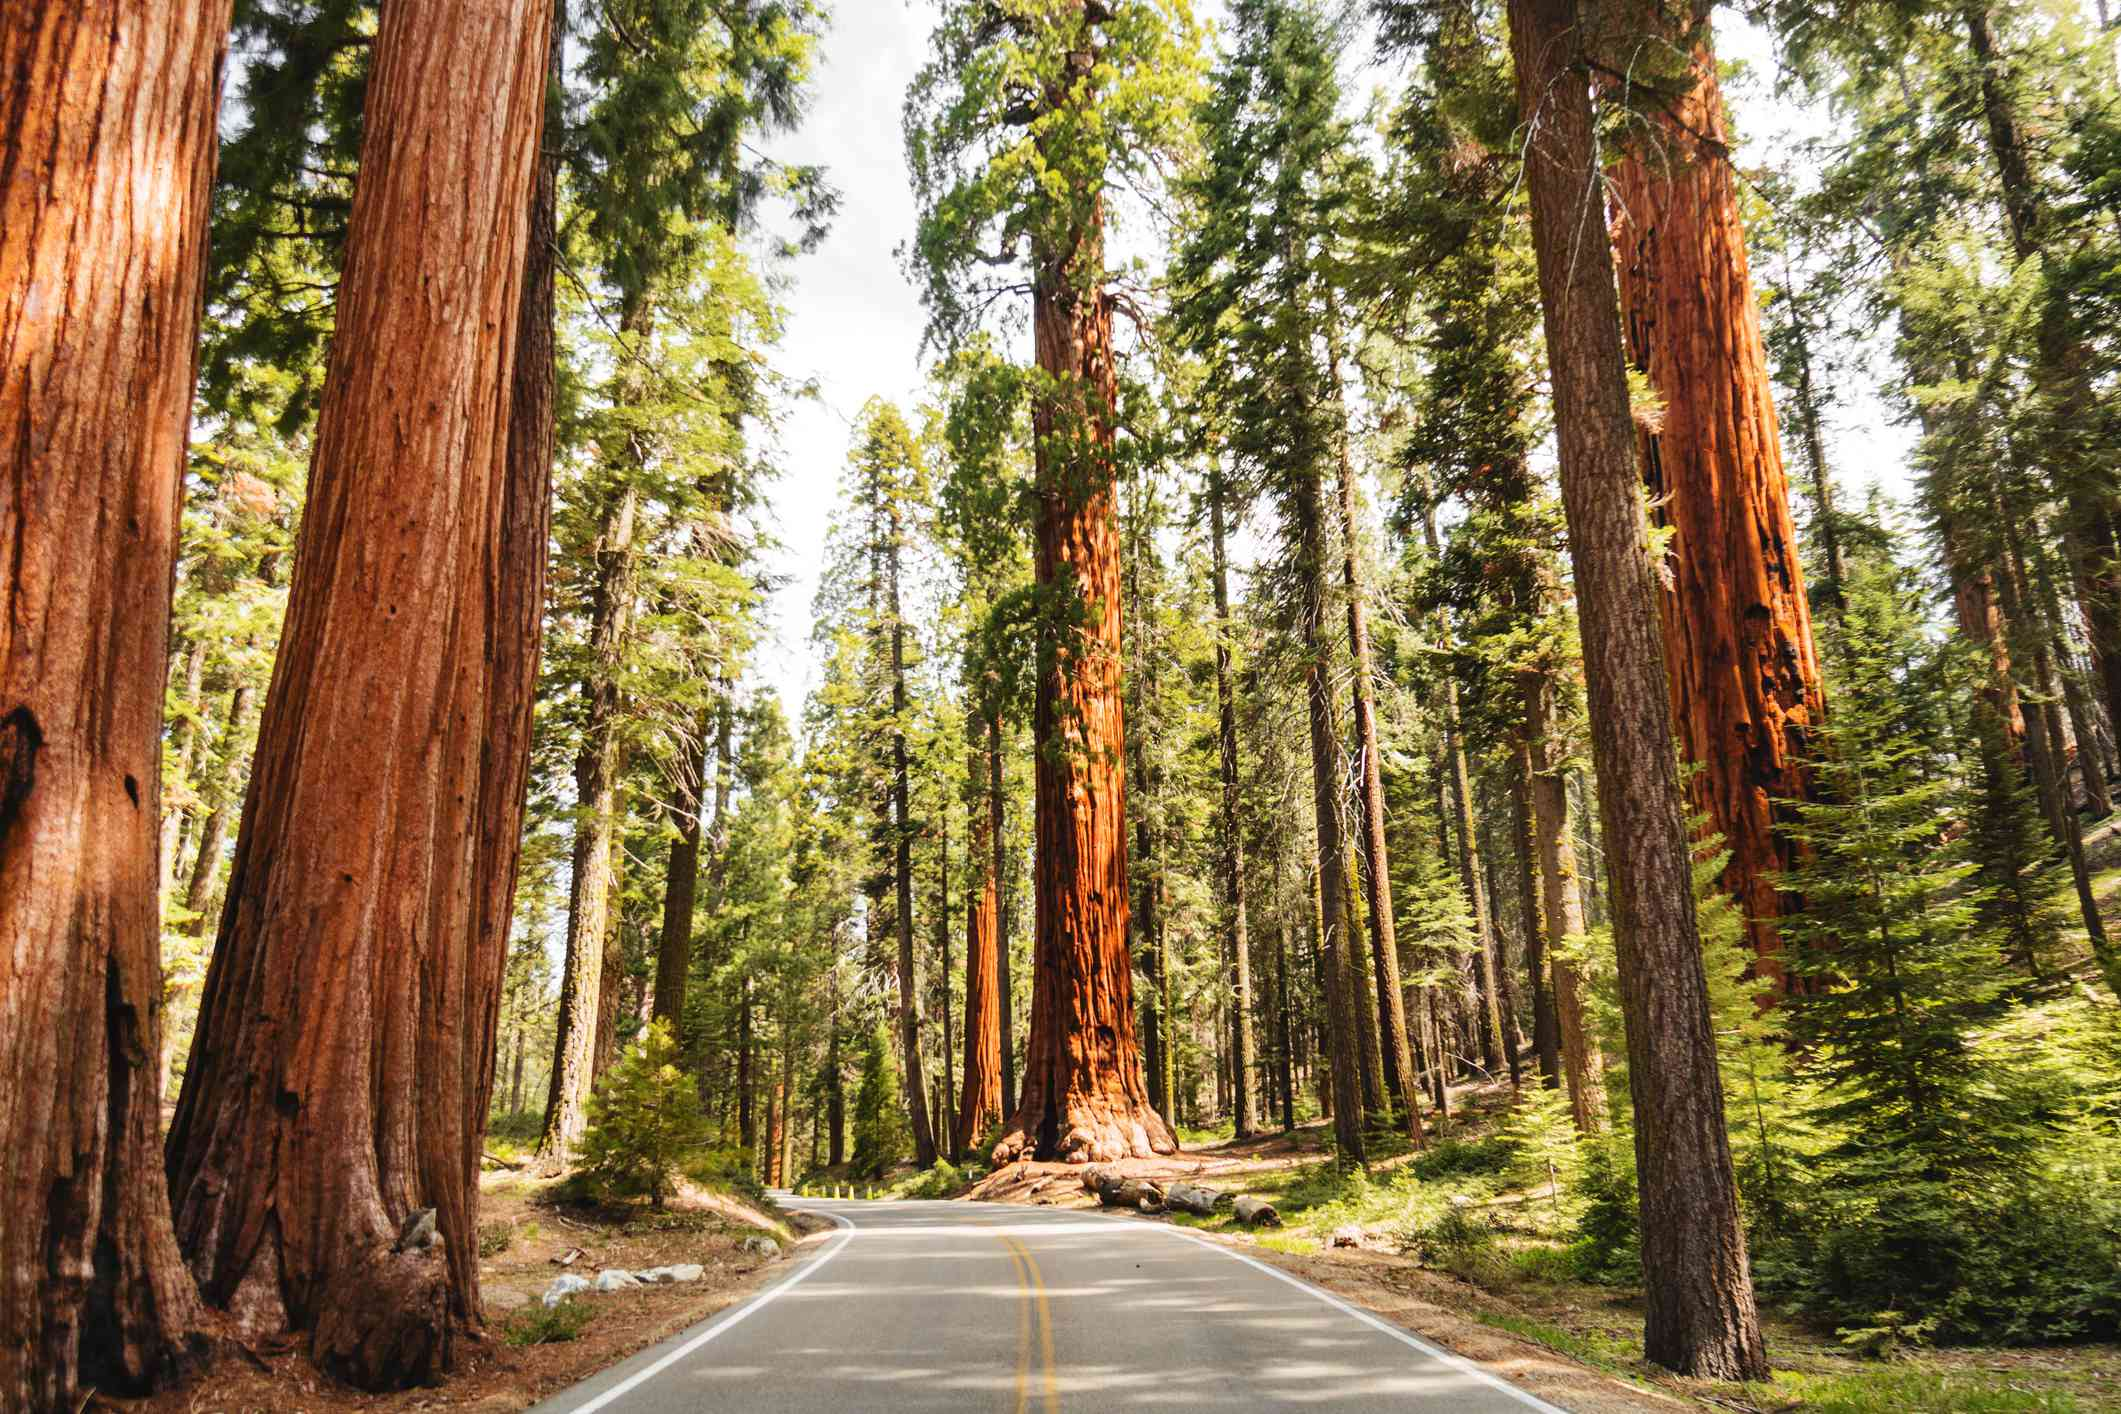 giant sequoia trees along a two laned road